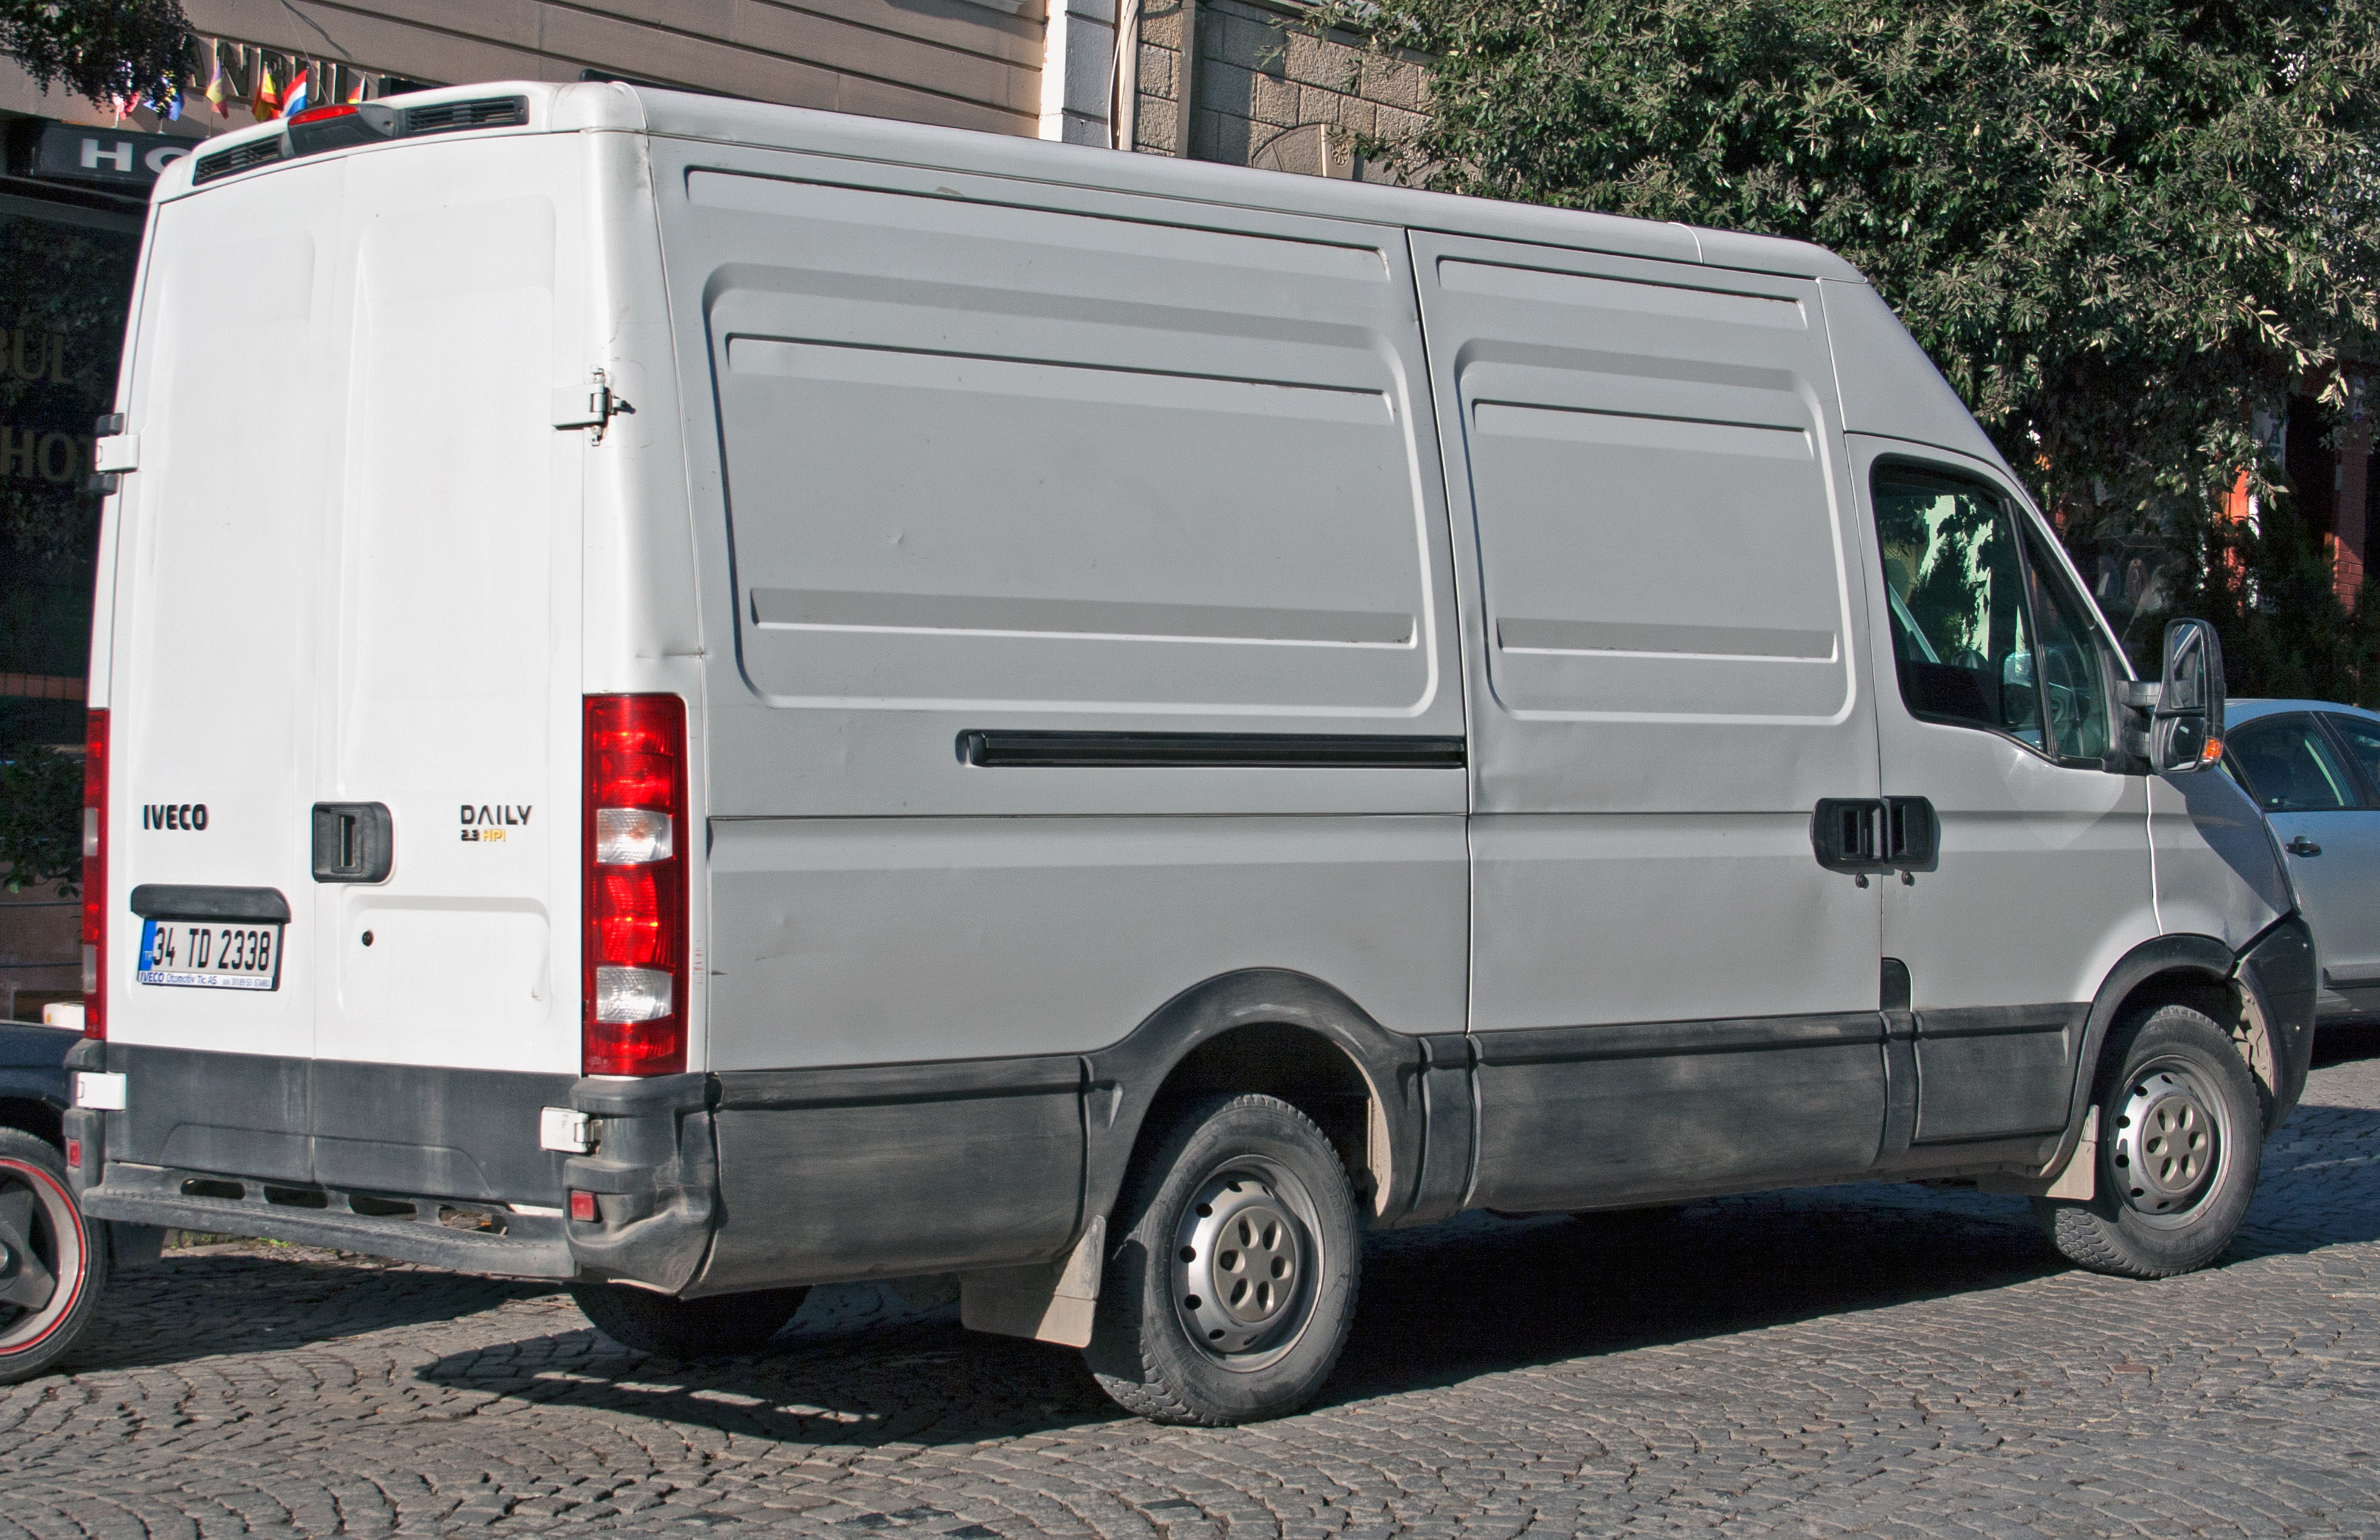 IVECO Daily 3.0 2013 photo - 10